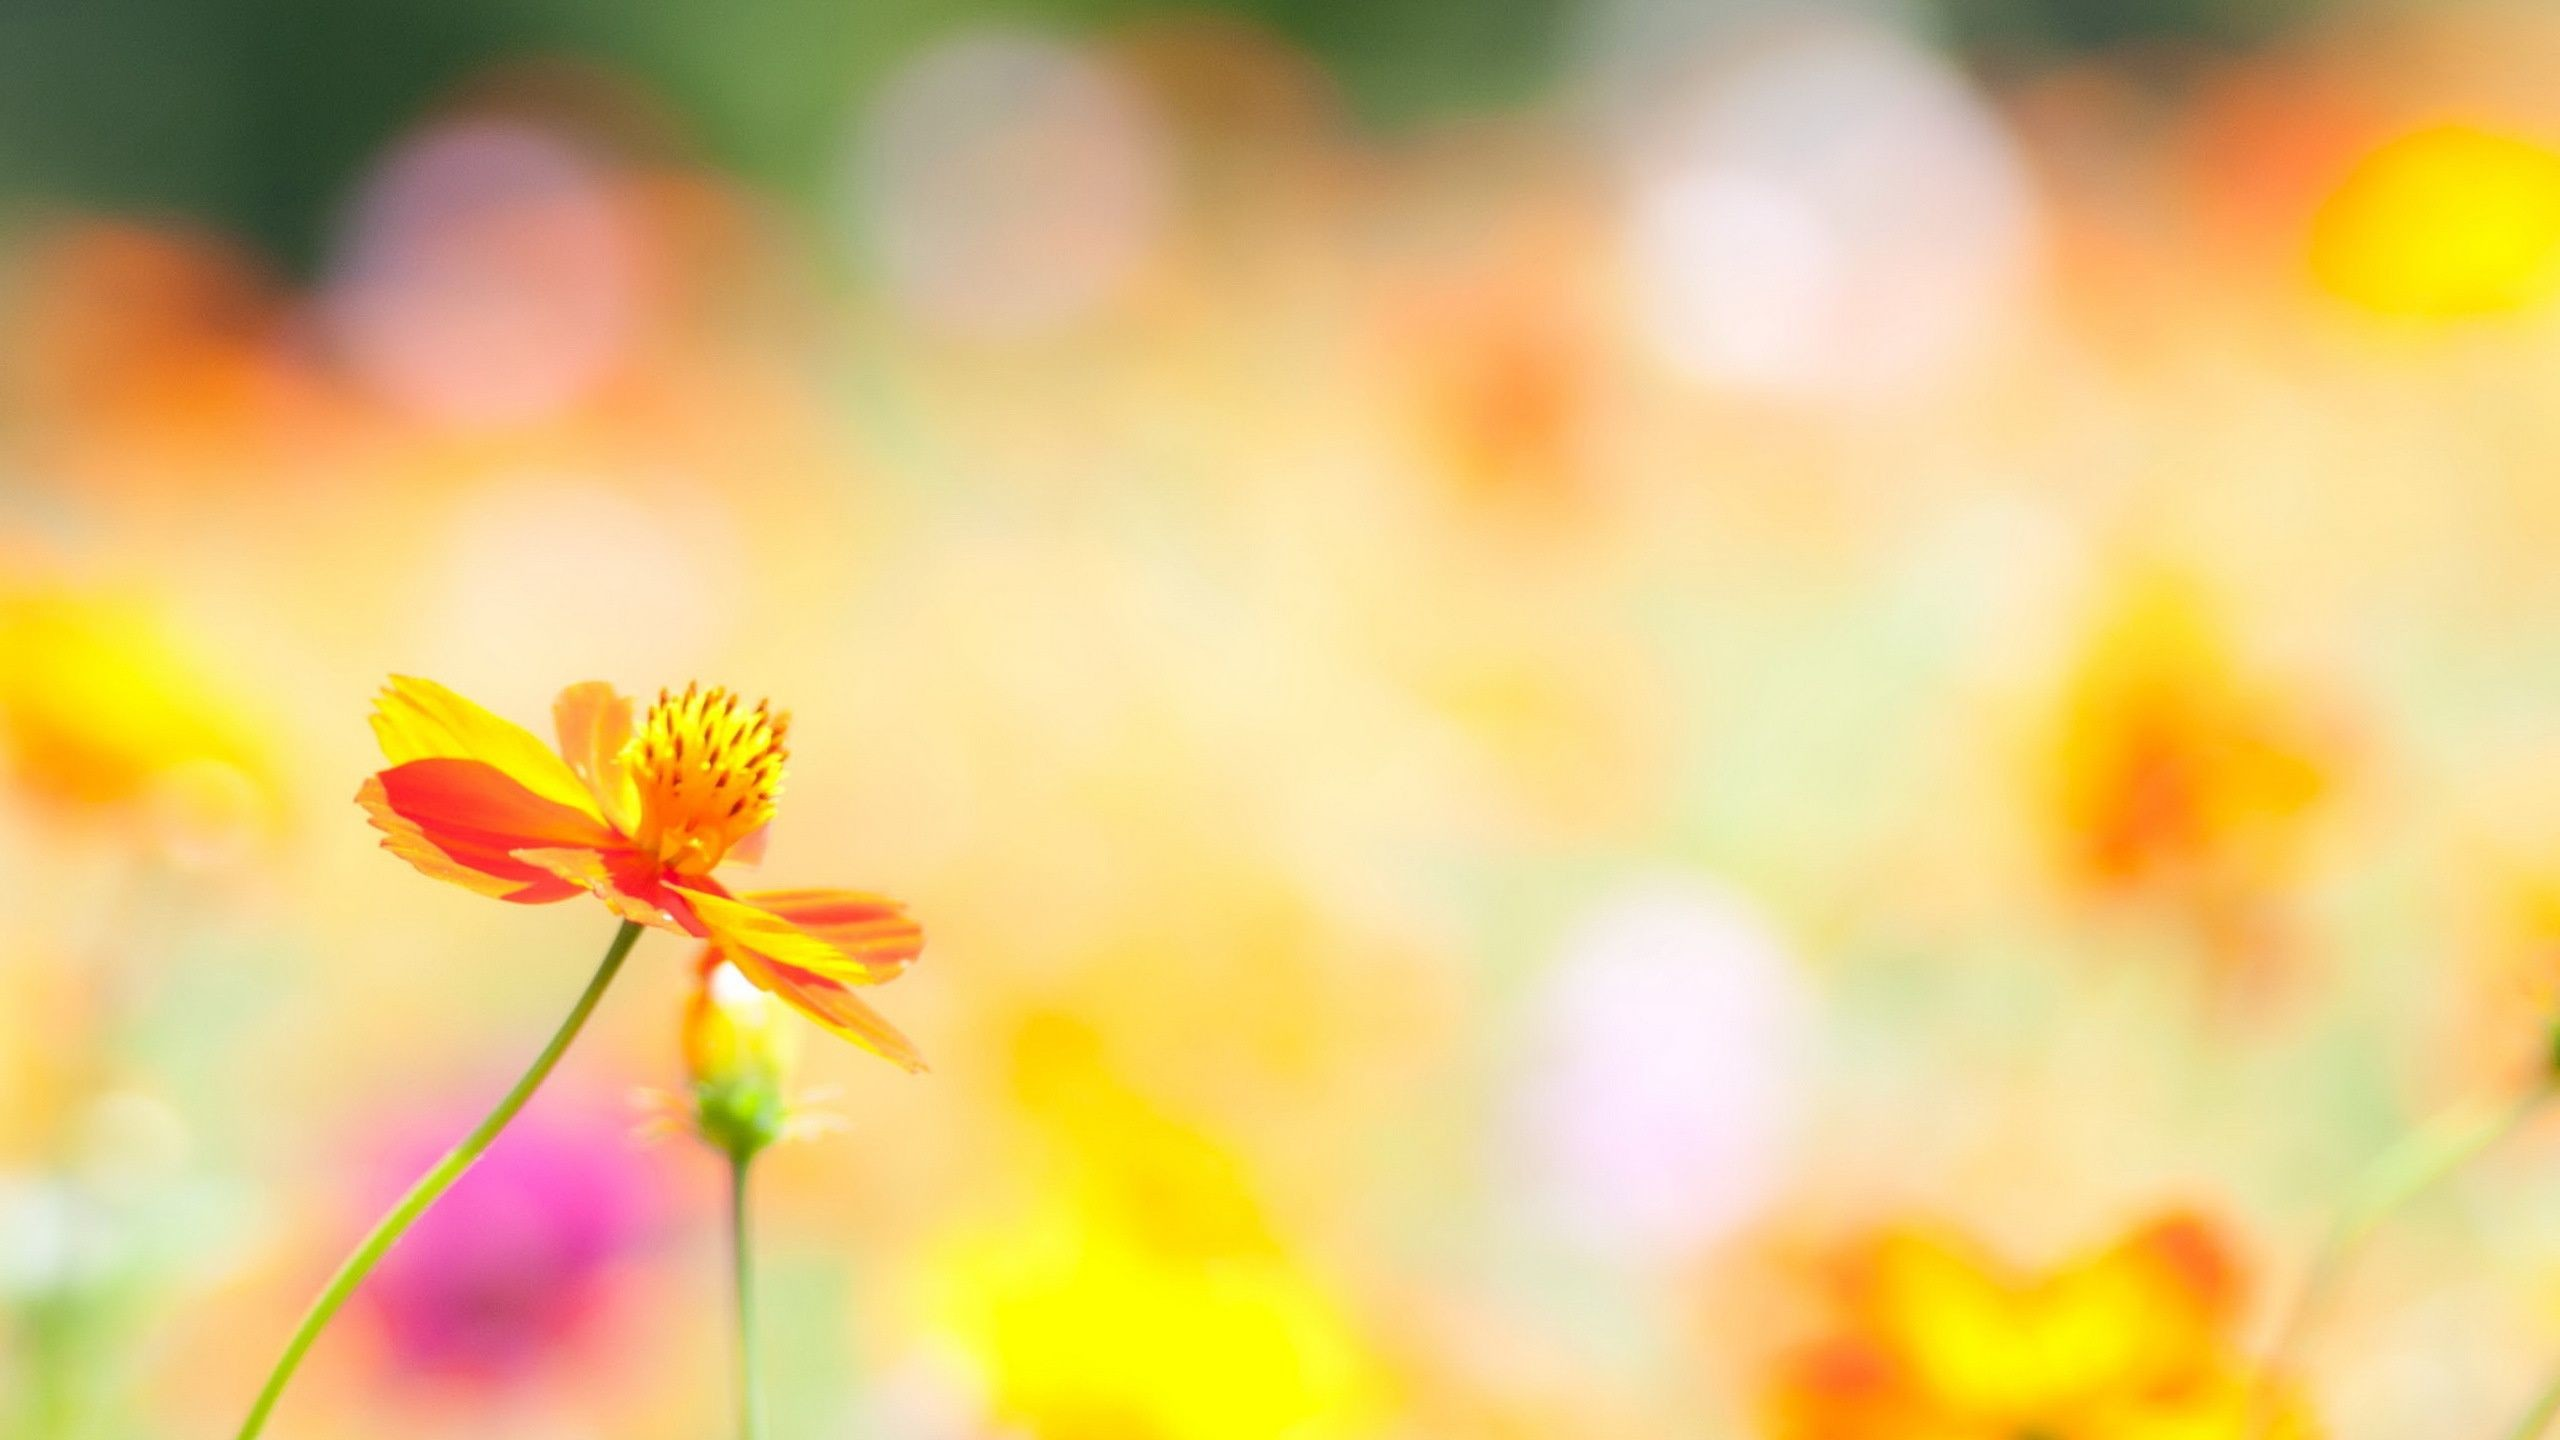 flower background wallpaper (66+ images)